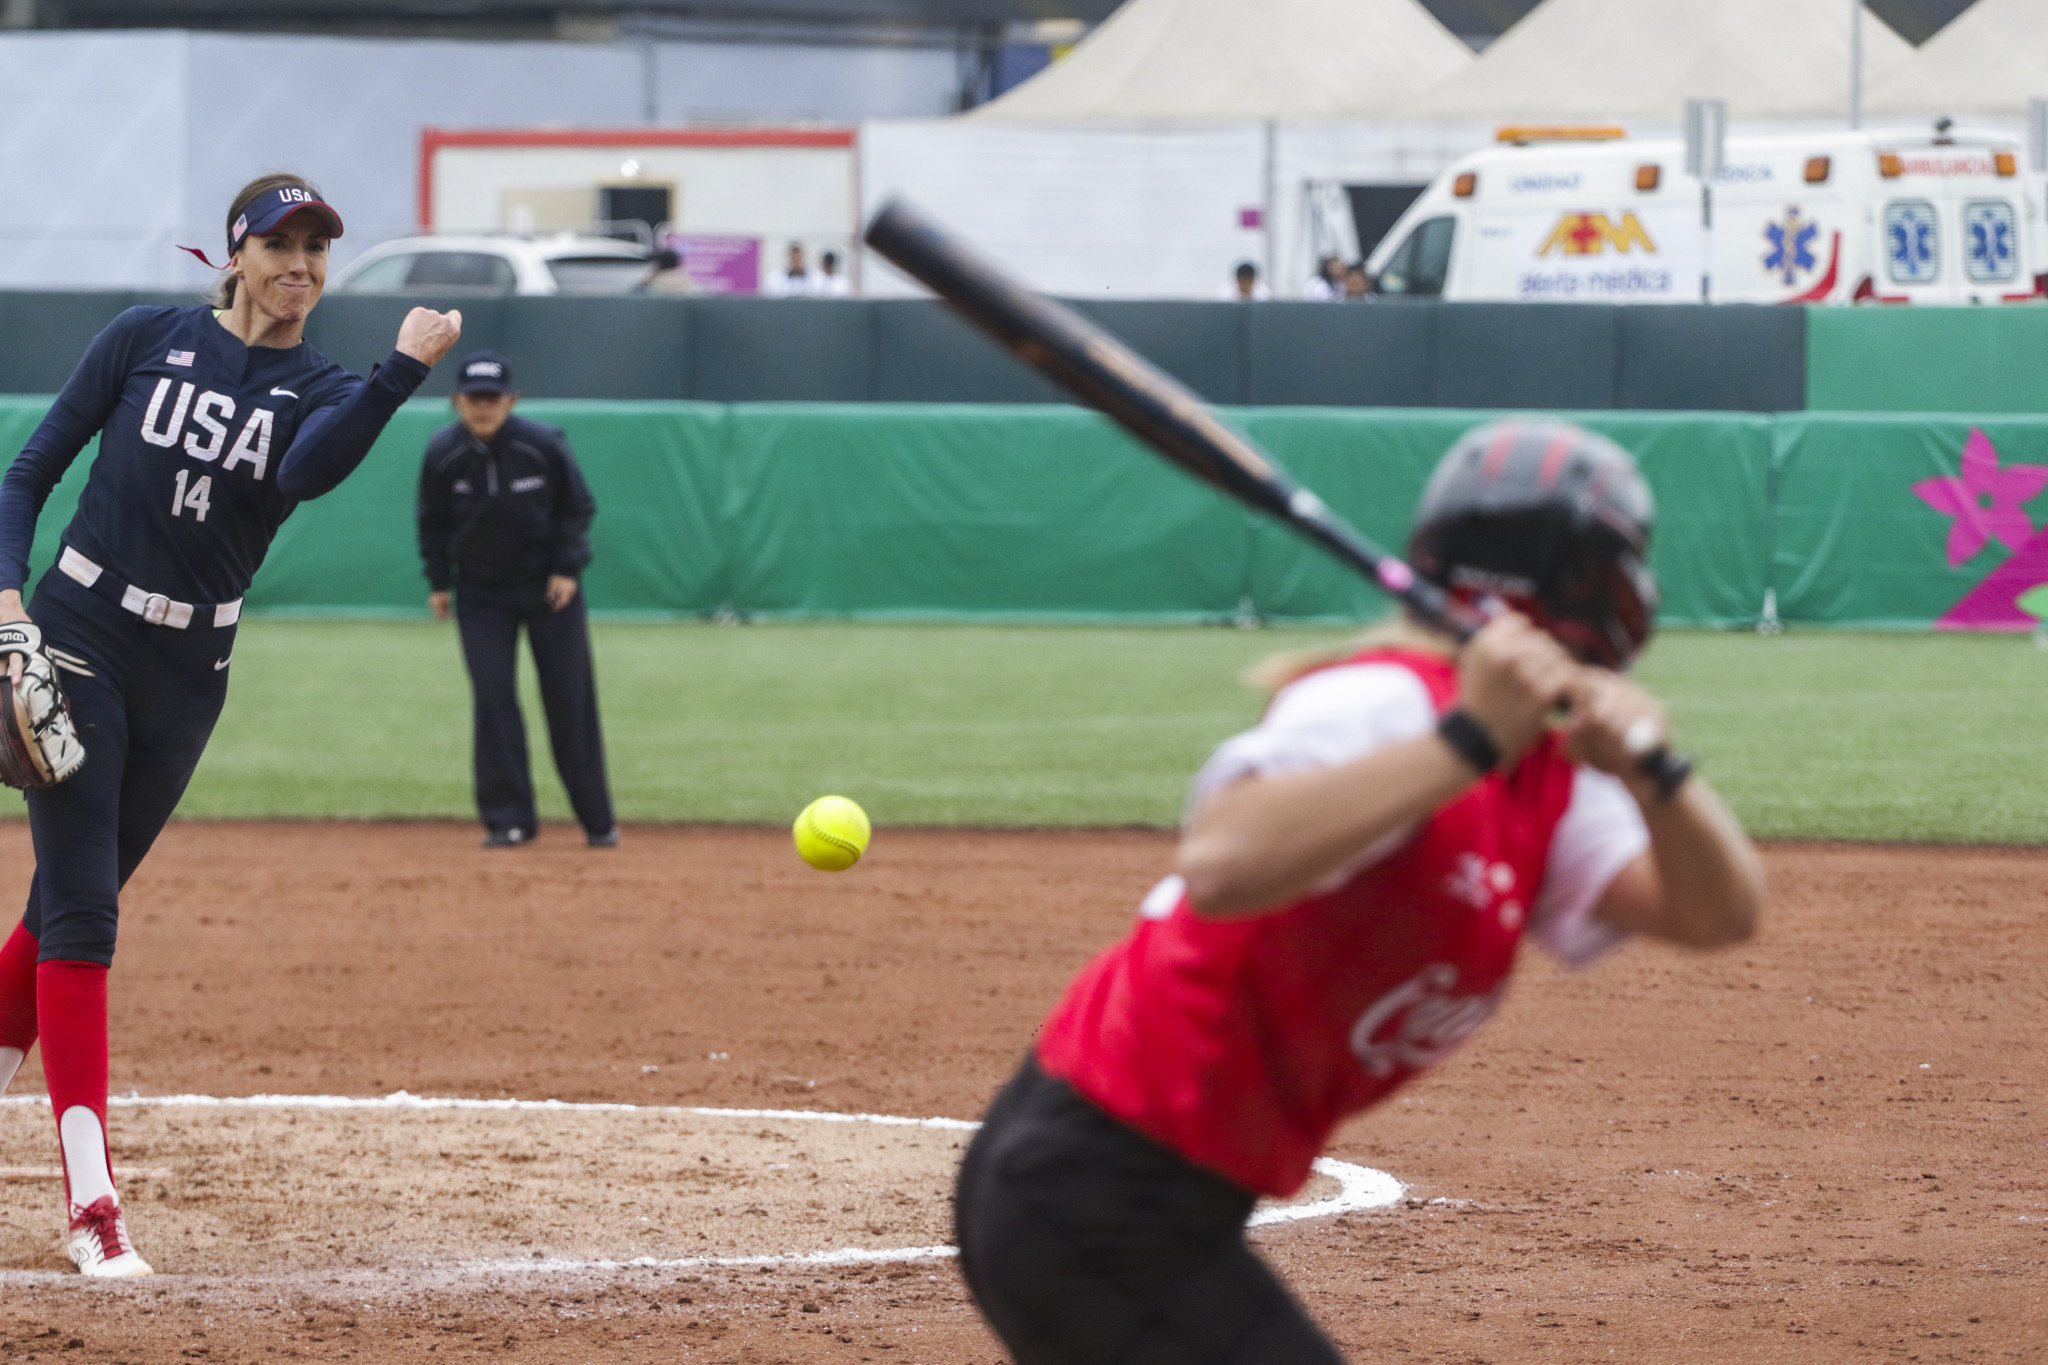 The US also came up against Canada in the grand final of the women's softball ©Lima 2019